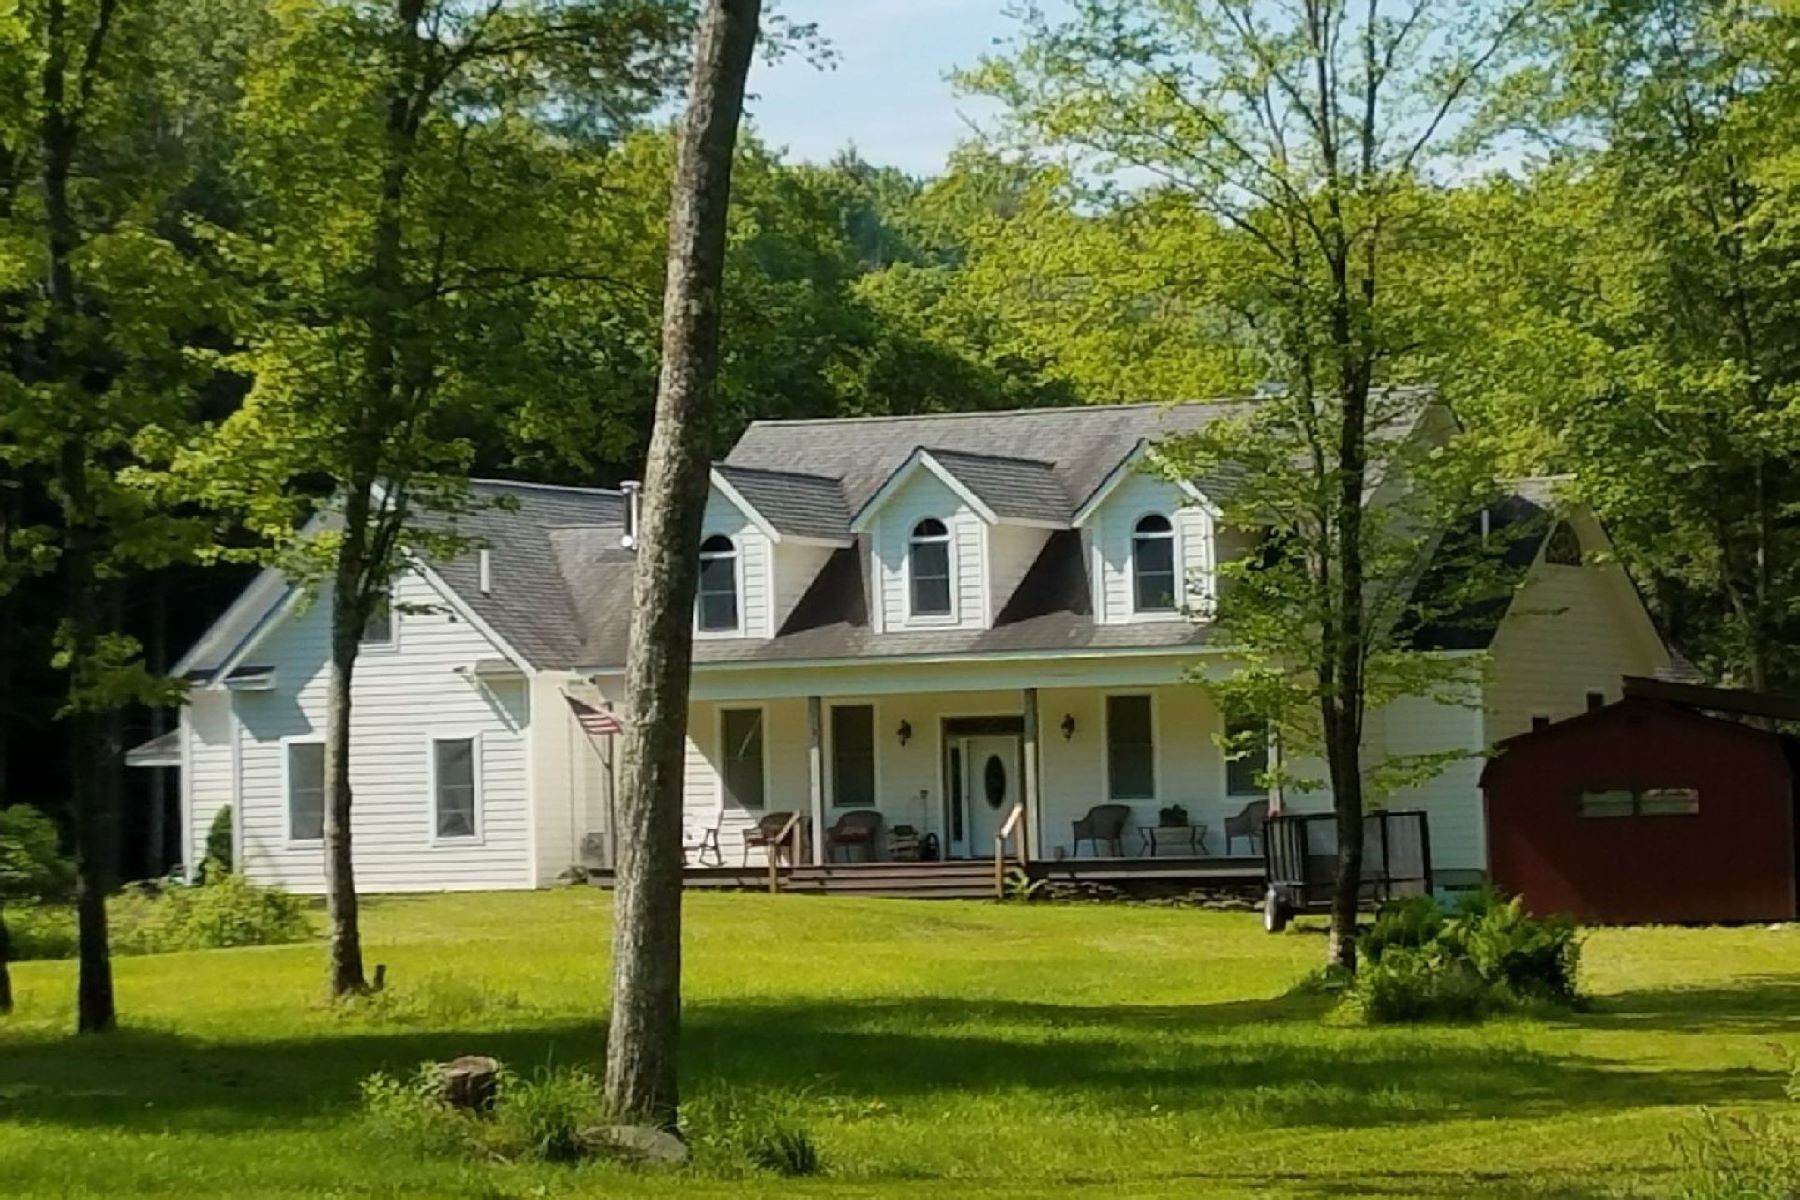 Multi-Family Homes for Sale at Hidden luxury in the forest near Belleayre Skiing 395 Roaring Brook Lane, Above the Owl's Nest in Highmount Highmount, New York 12441 United States